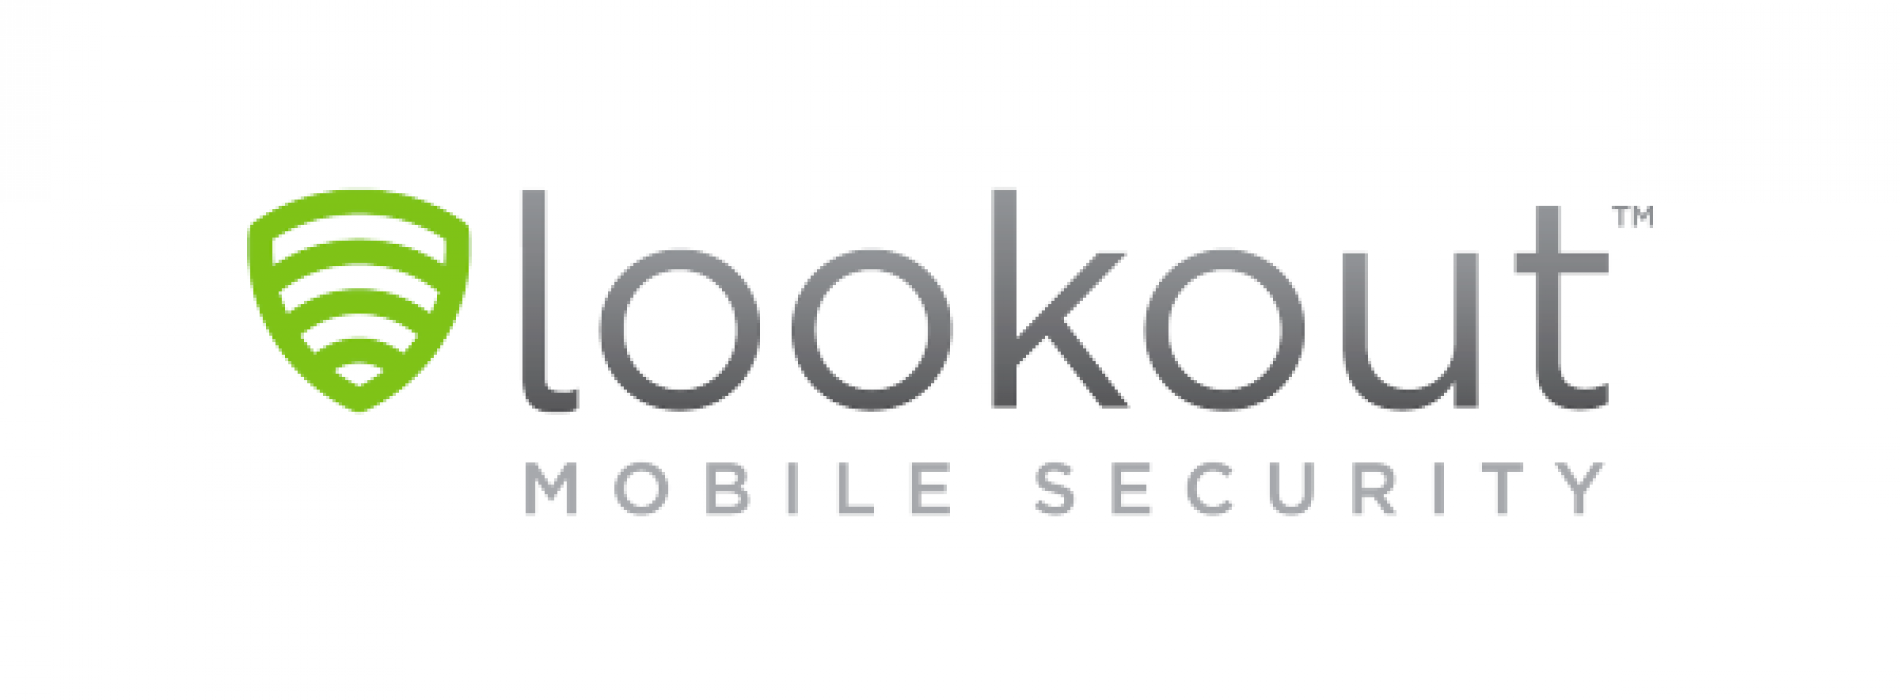 Lookout Mobile Security releases patch for Samsung Galaxy S3, Note 2